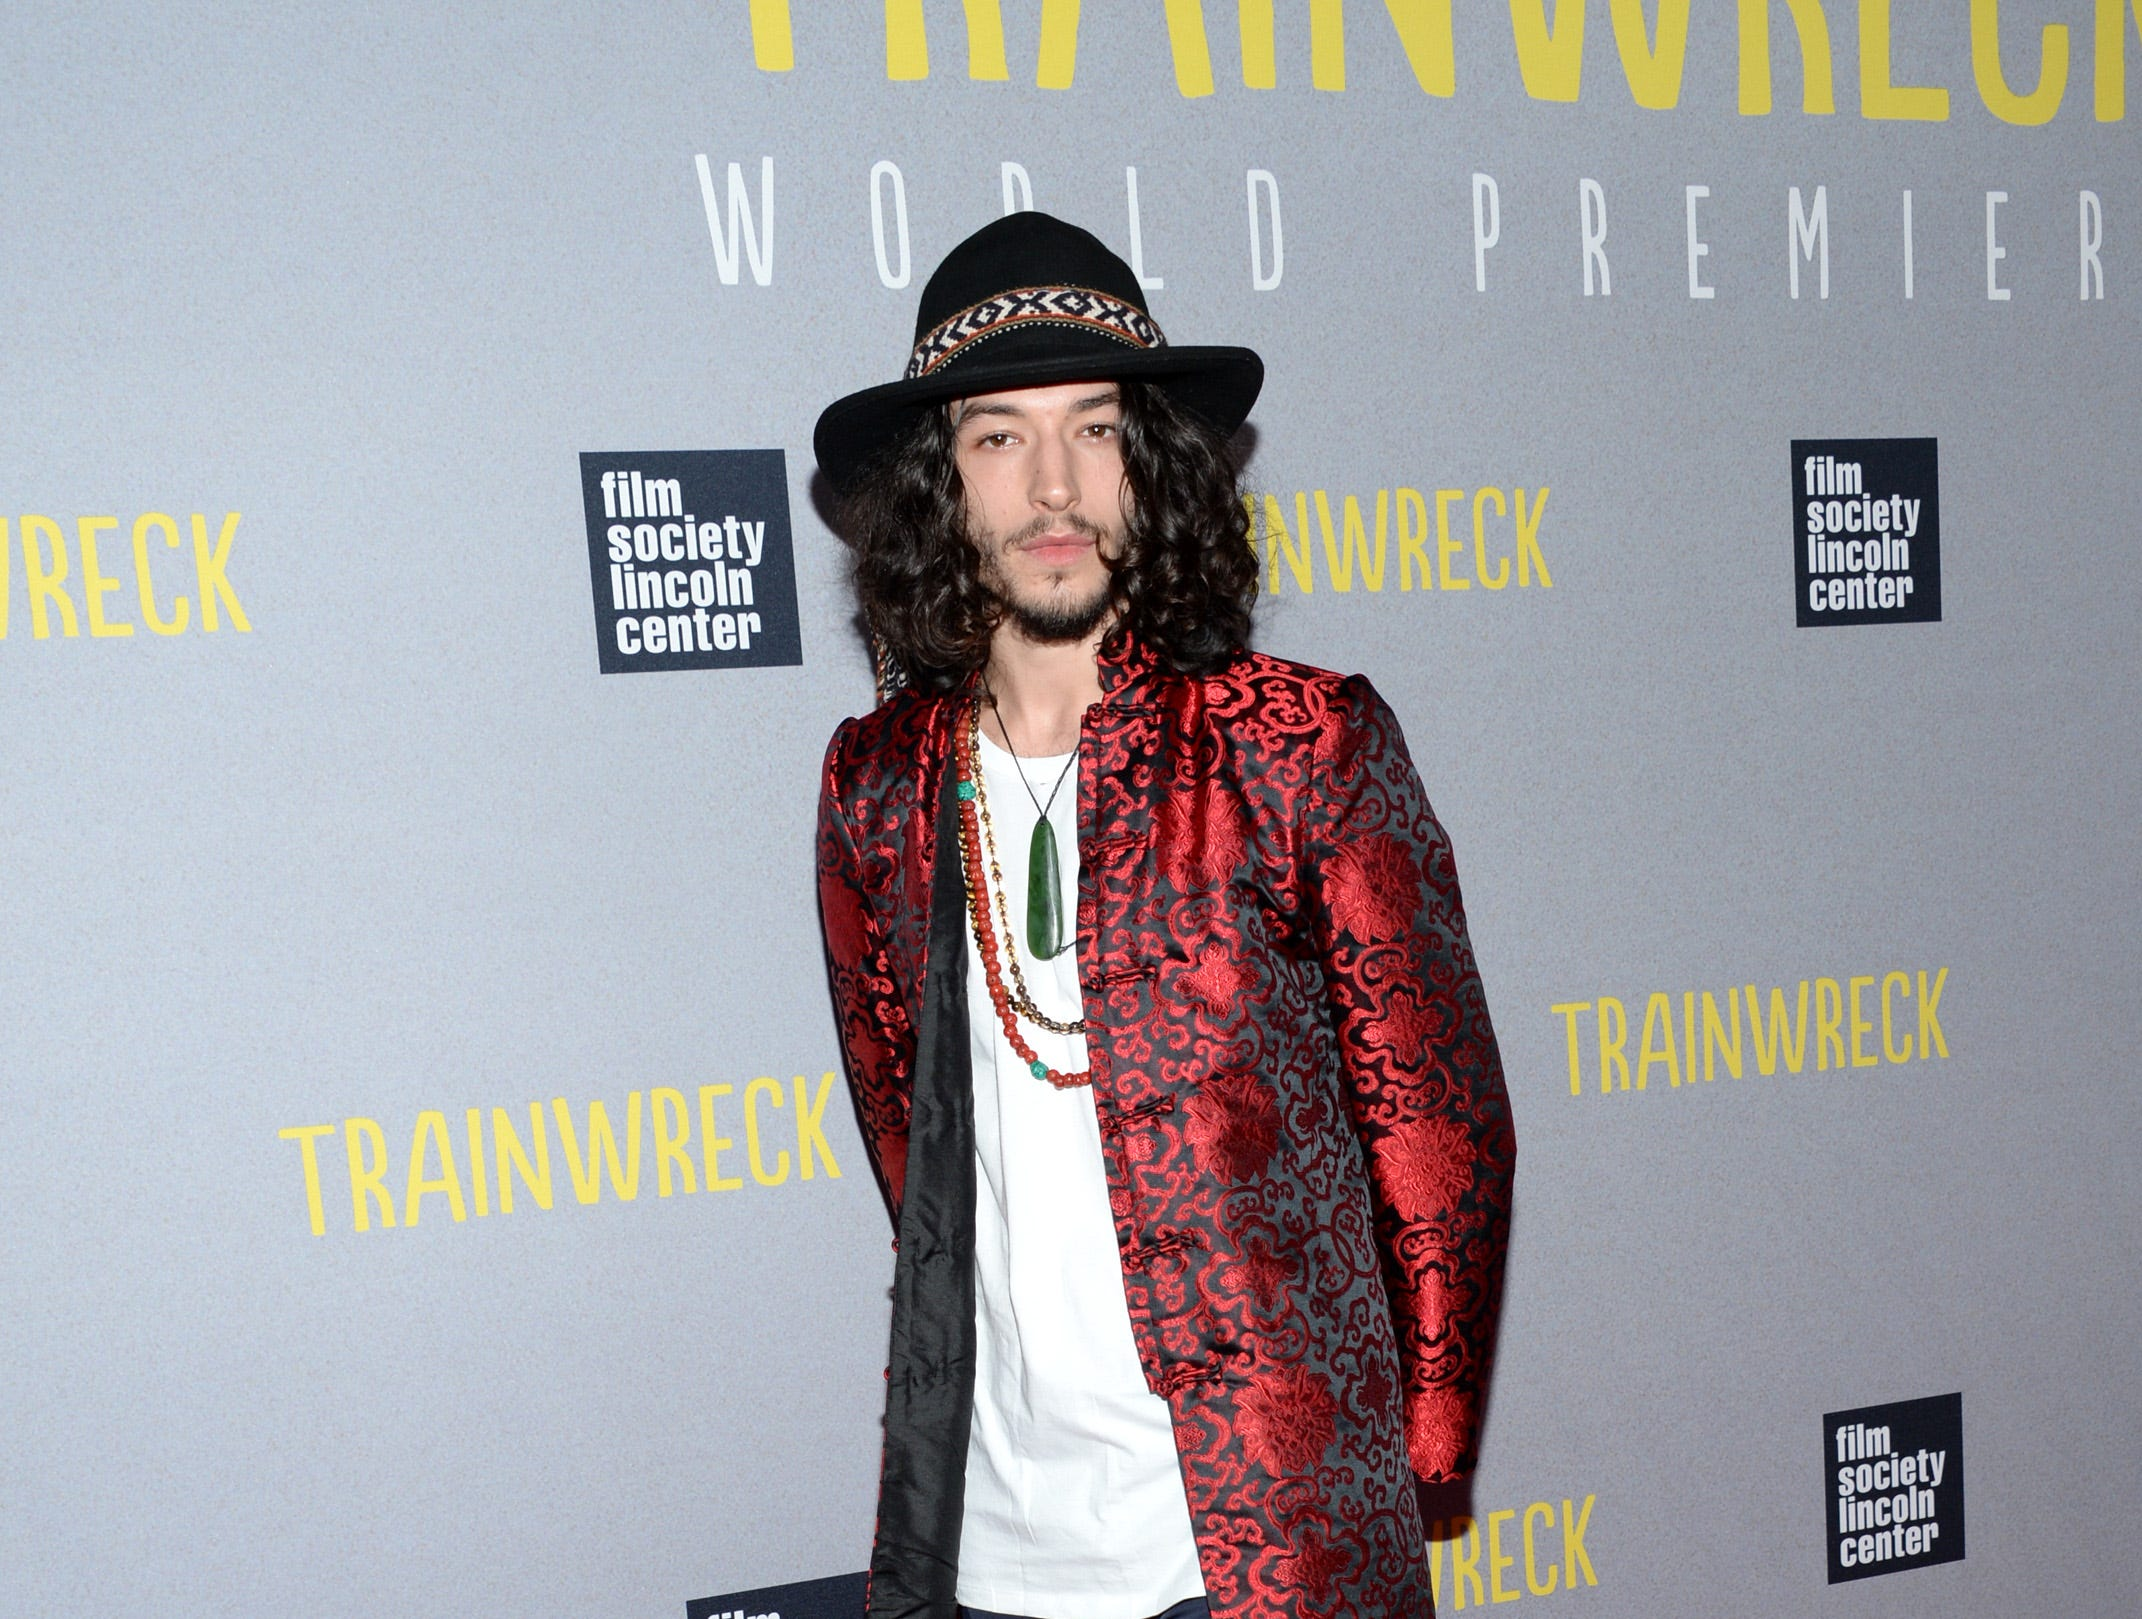 """Actor Ezra Miller attends the world premiere of """"Trainwreck"""" at Alice Tully Hall on Tuesday, July 14, 2015, in New York. (Photo by Evan Agostini/Invision/AP) ORG XMIT: NYEA110"""